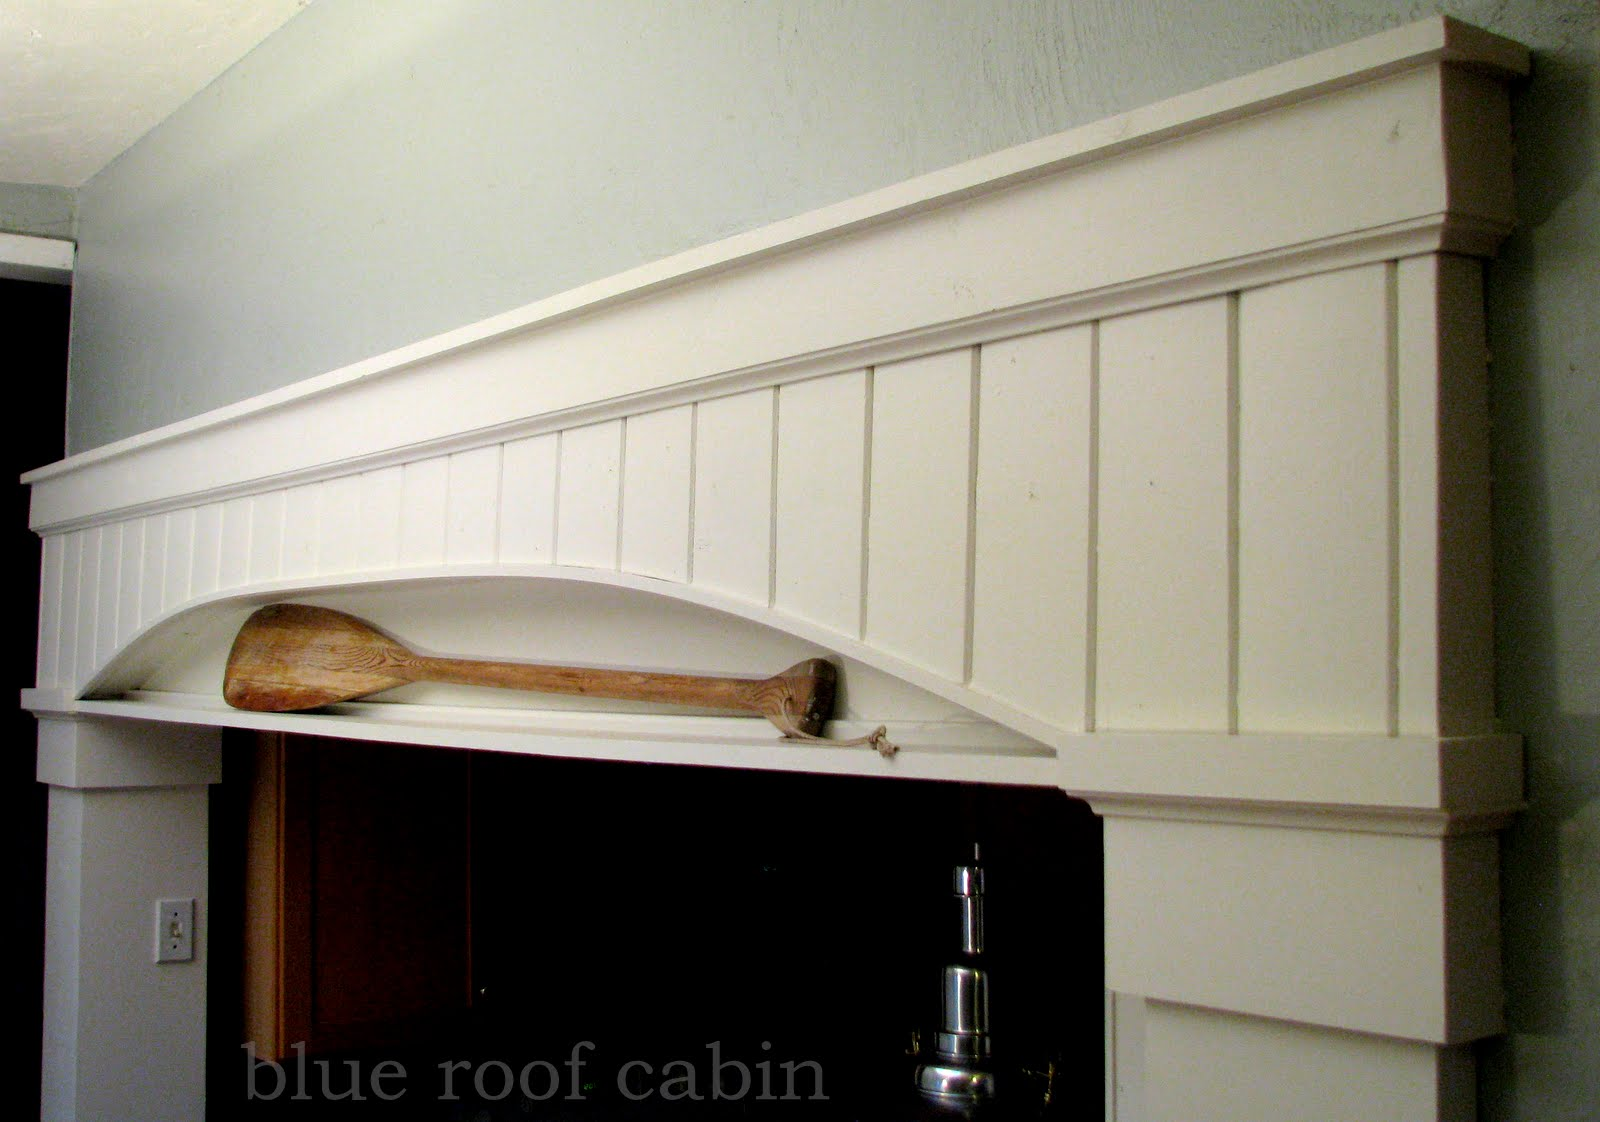 blue roof cabin: Archway to a Tiny Kitchen